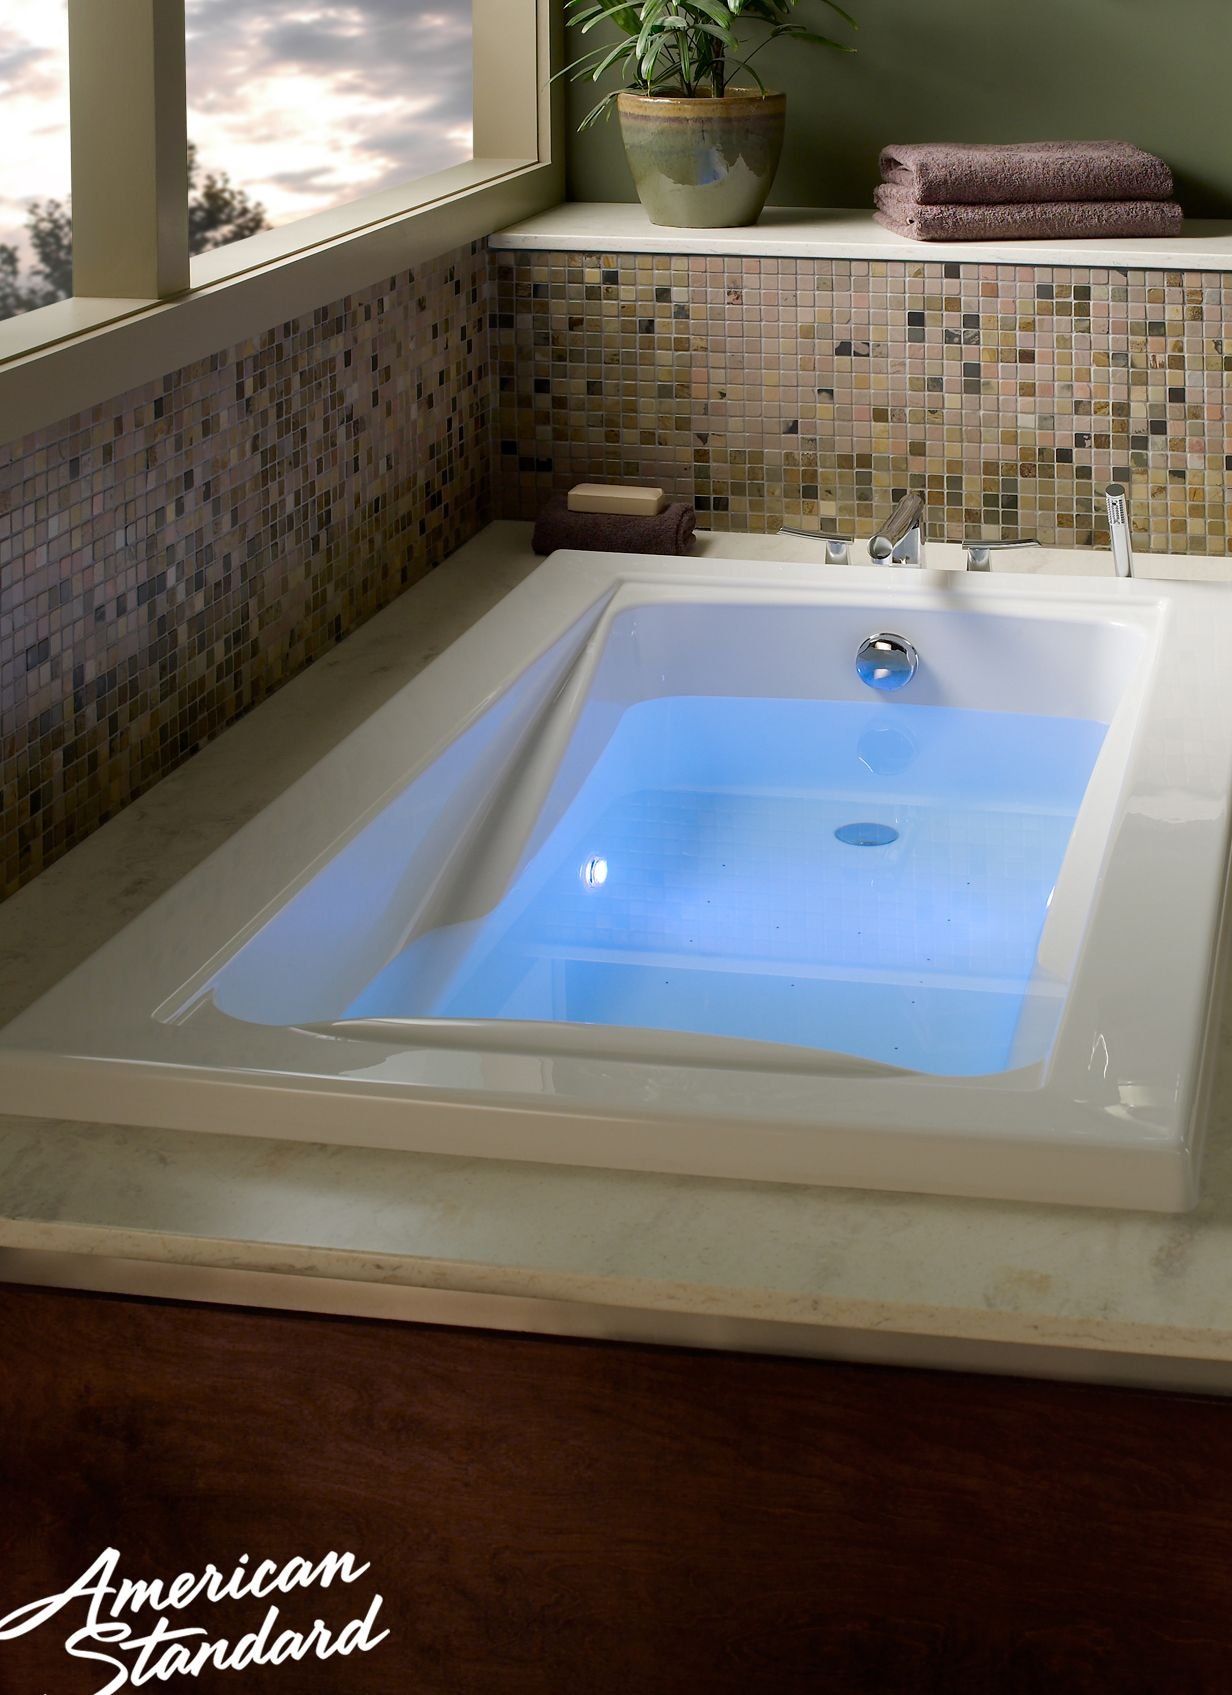 American Standard Green Tea Bathtub | Our Baths | Pinterest ...